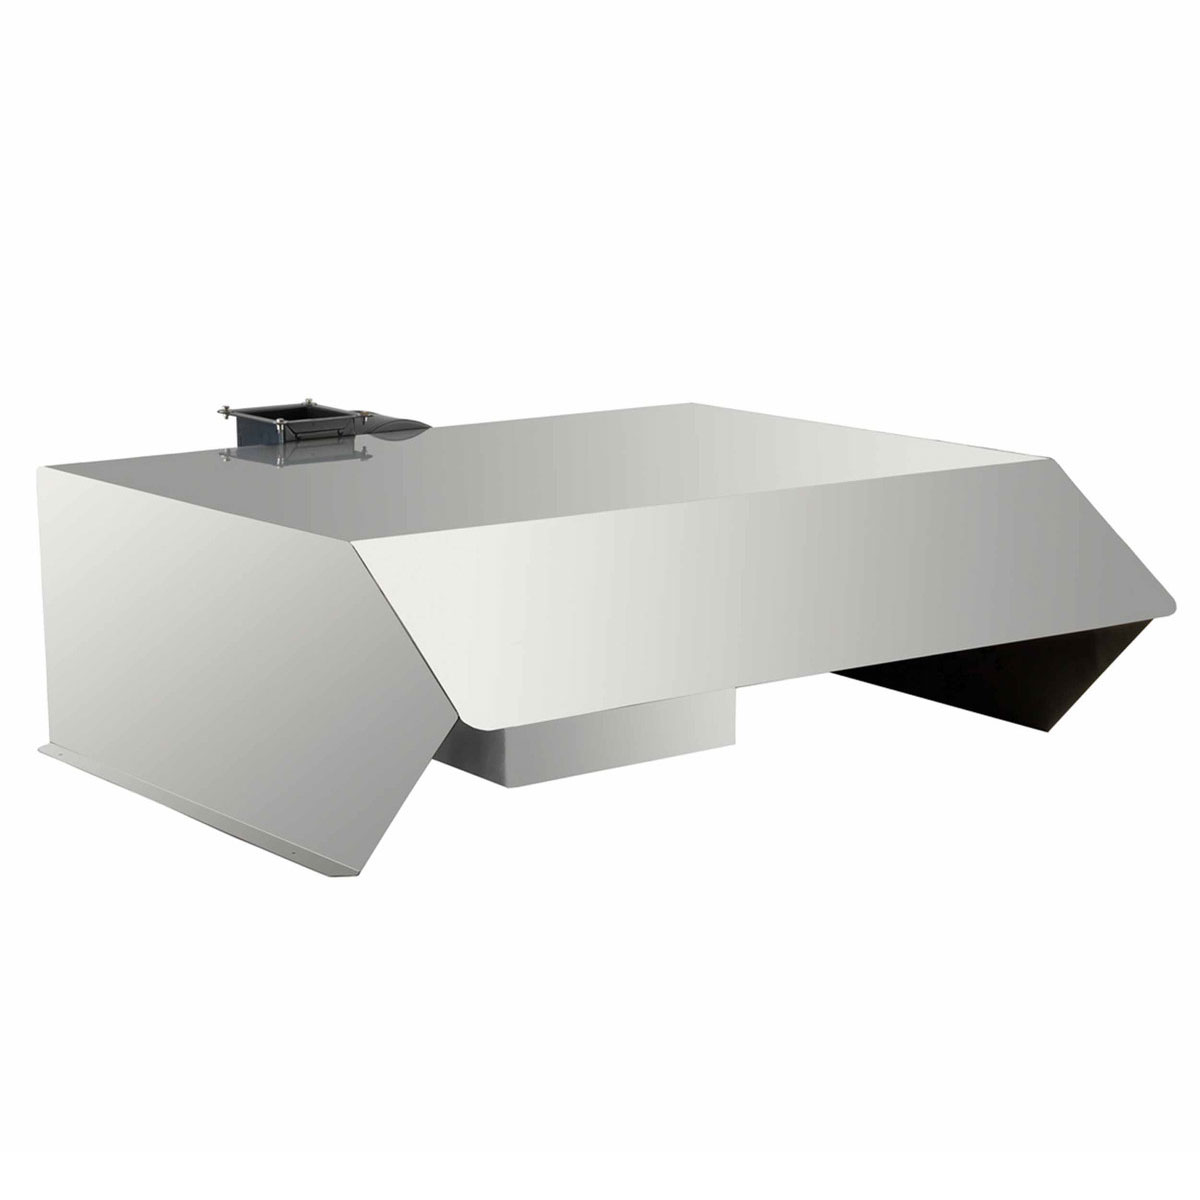 Cookshack PA003 exhaust hood